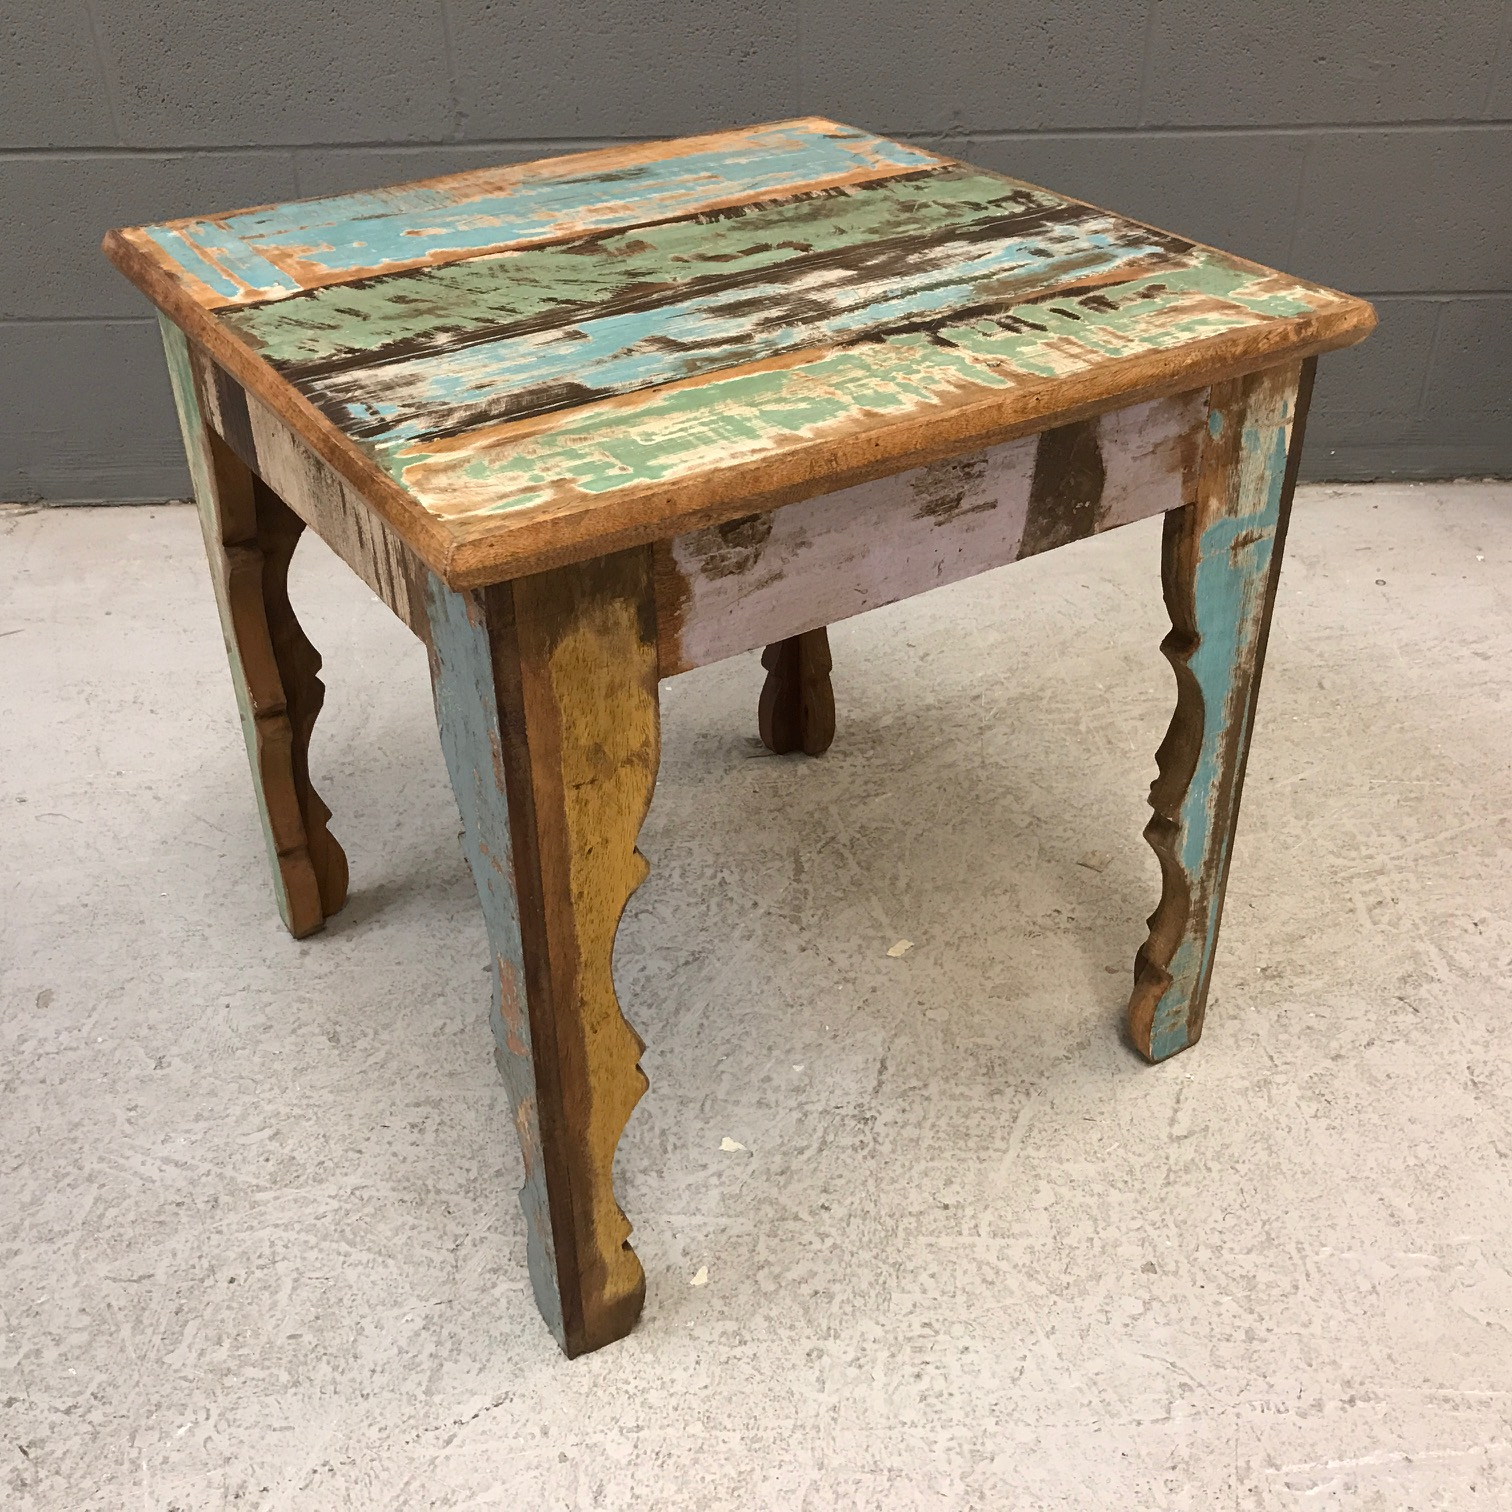 furniture beauty home with reclaimed wood side table wrought iron accent distressed nesting tables griffin pottery barn heavy duty coffee reclaime rustic pedestal dining placemats